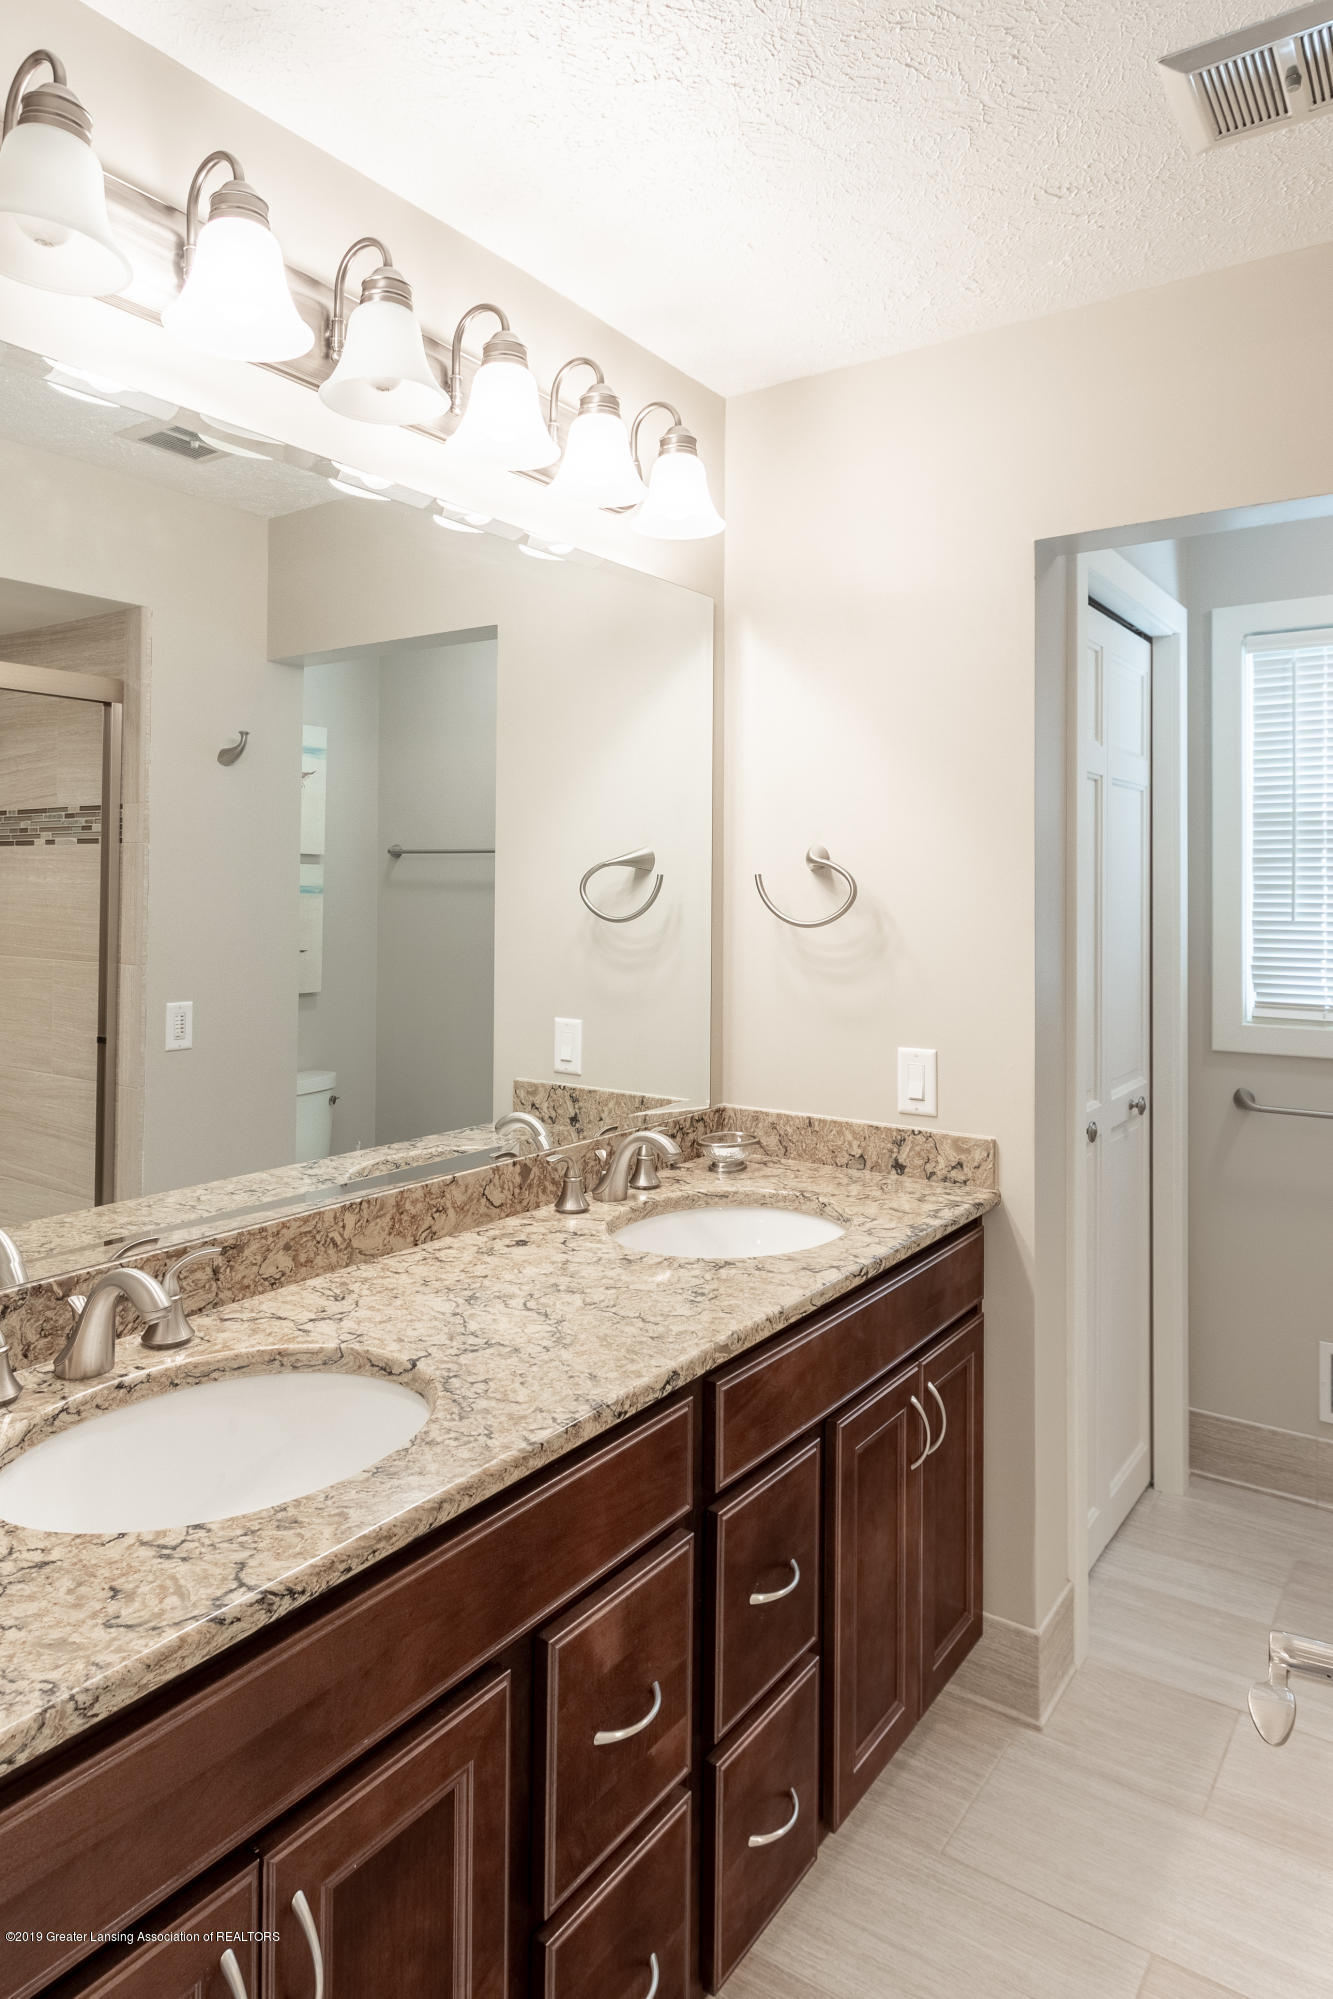 2133 Woodfield Rd - Full Bathroom - 40